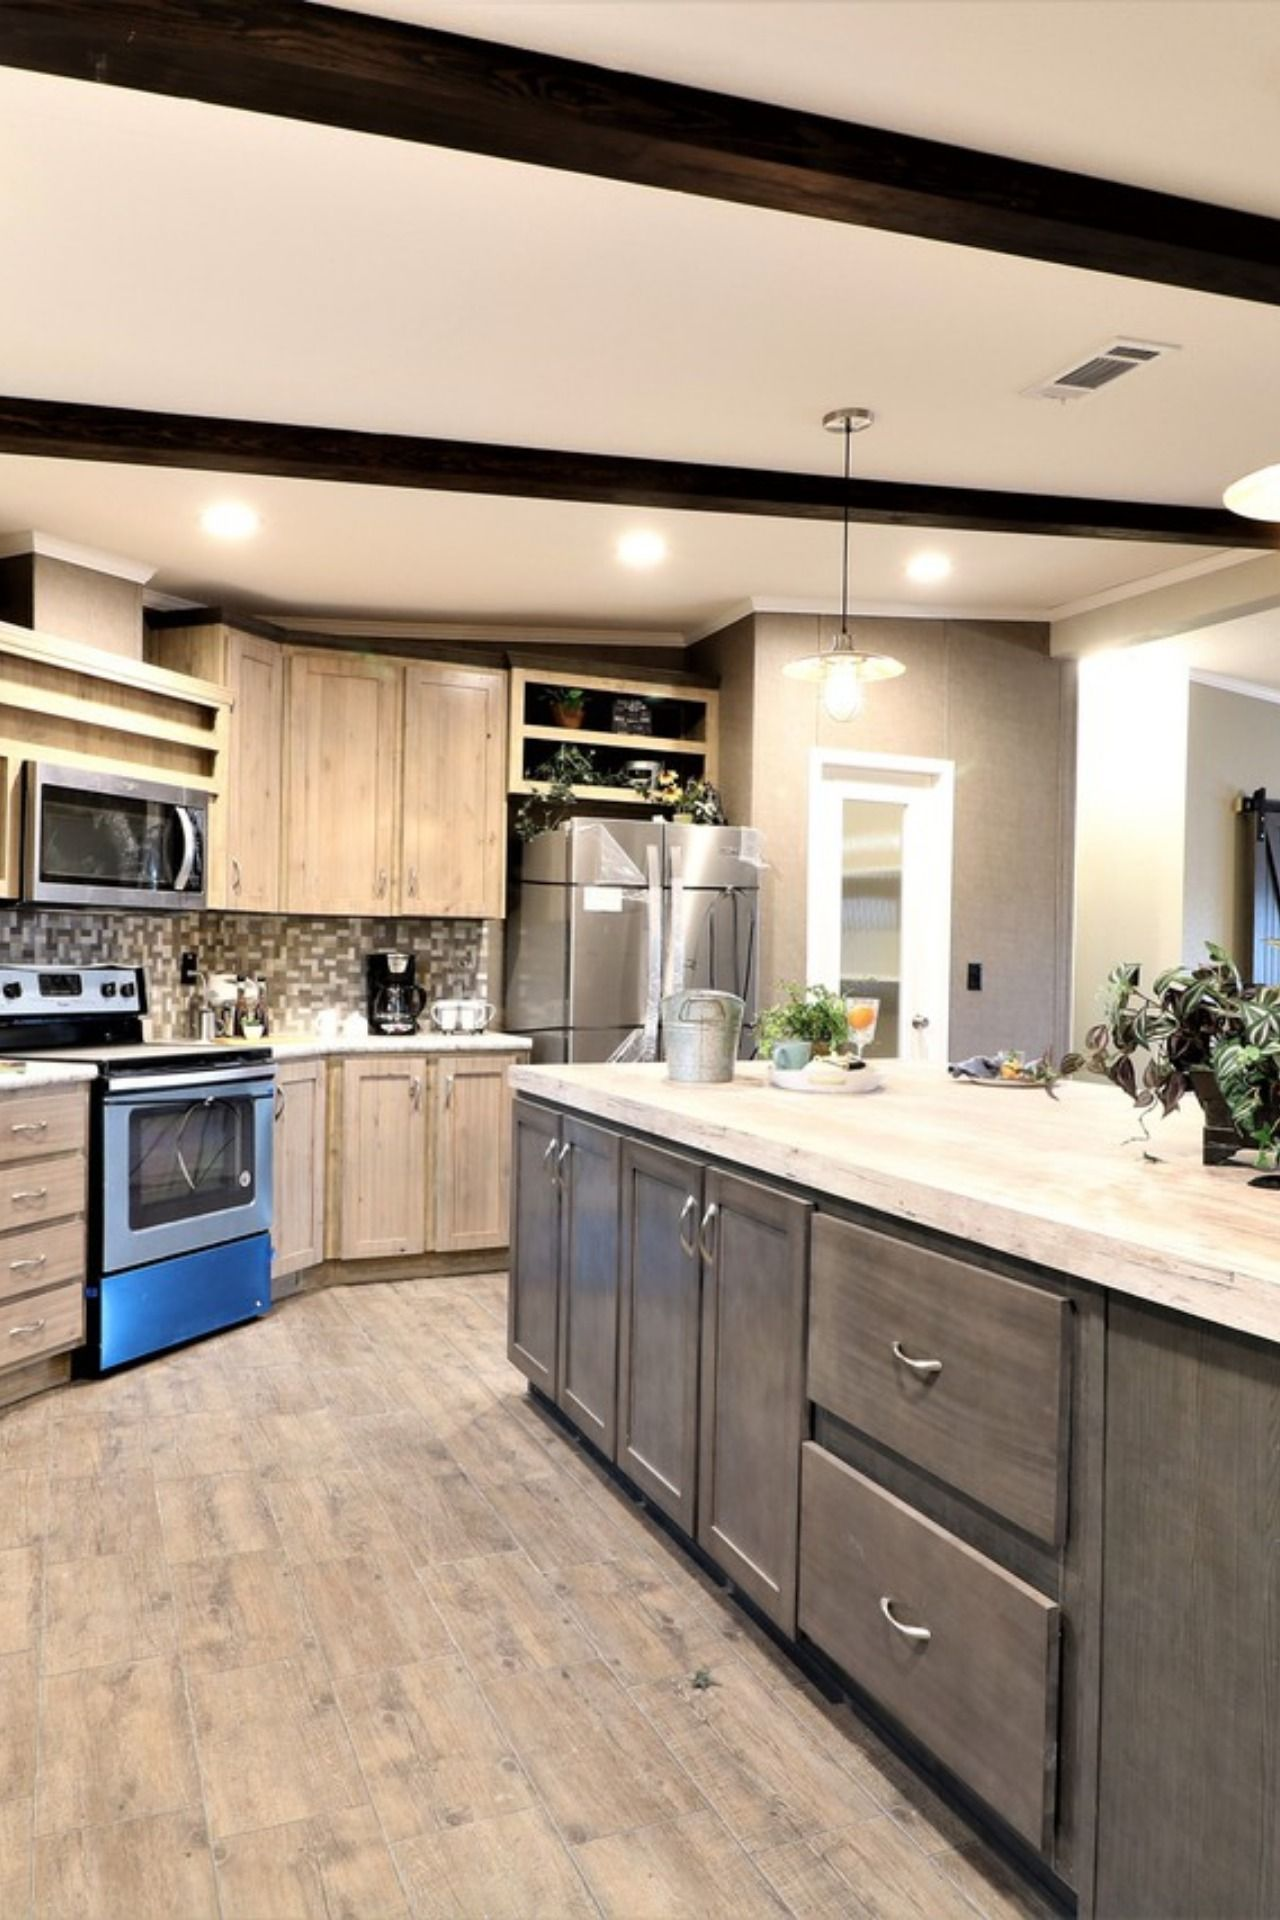 The Magnum Home 76 4 Bedrooms 2 Baths 2584 Sq Ft Price Was